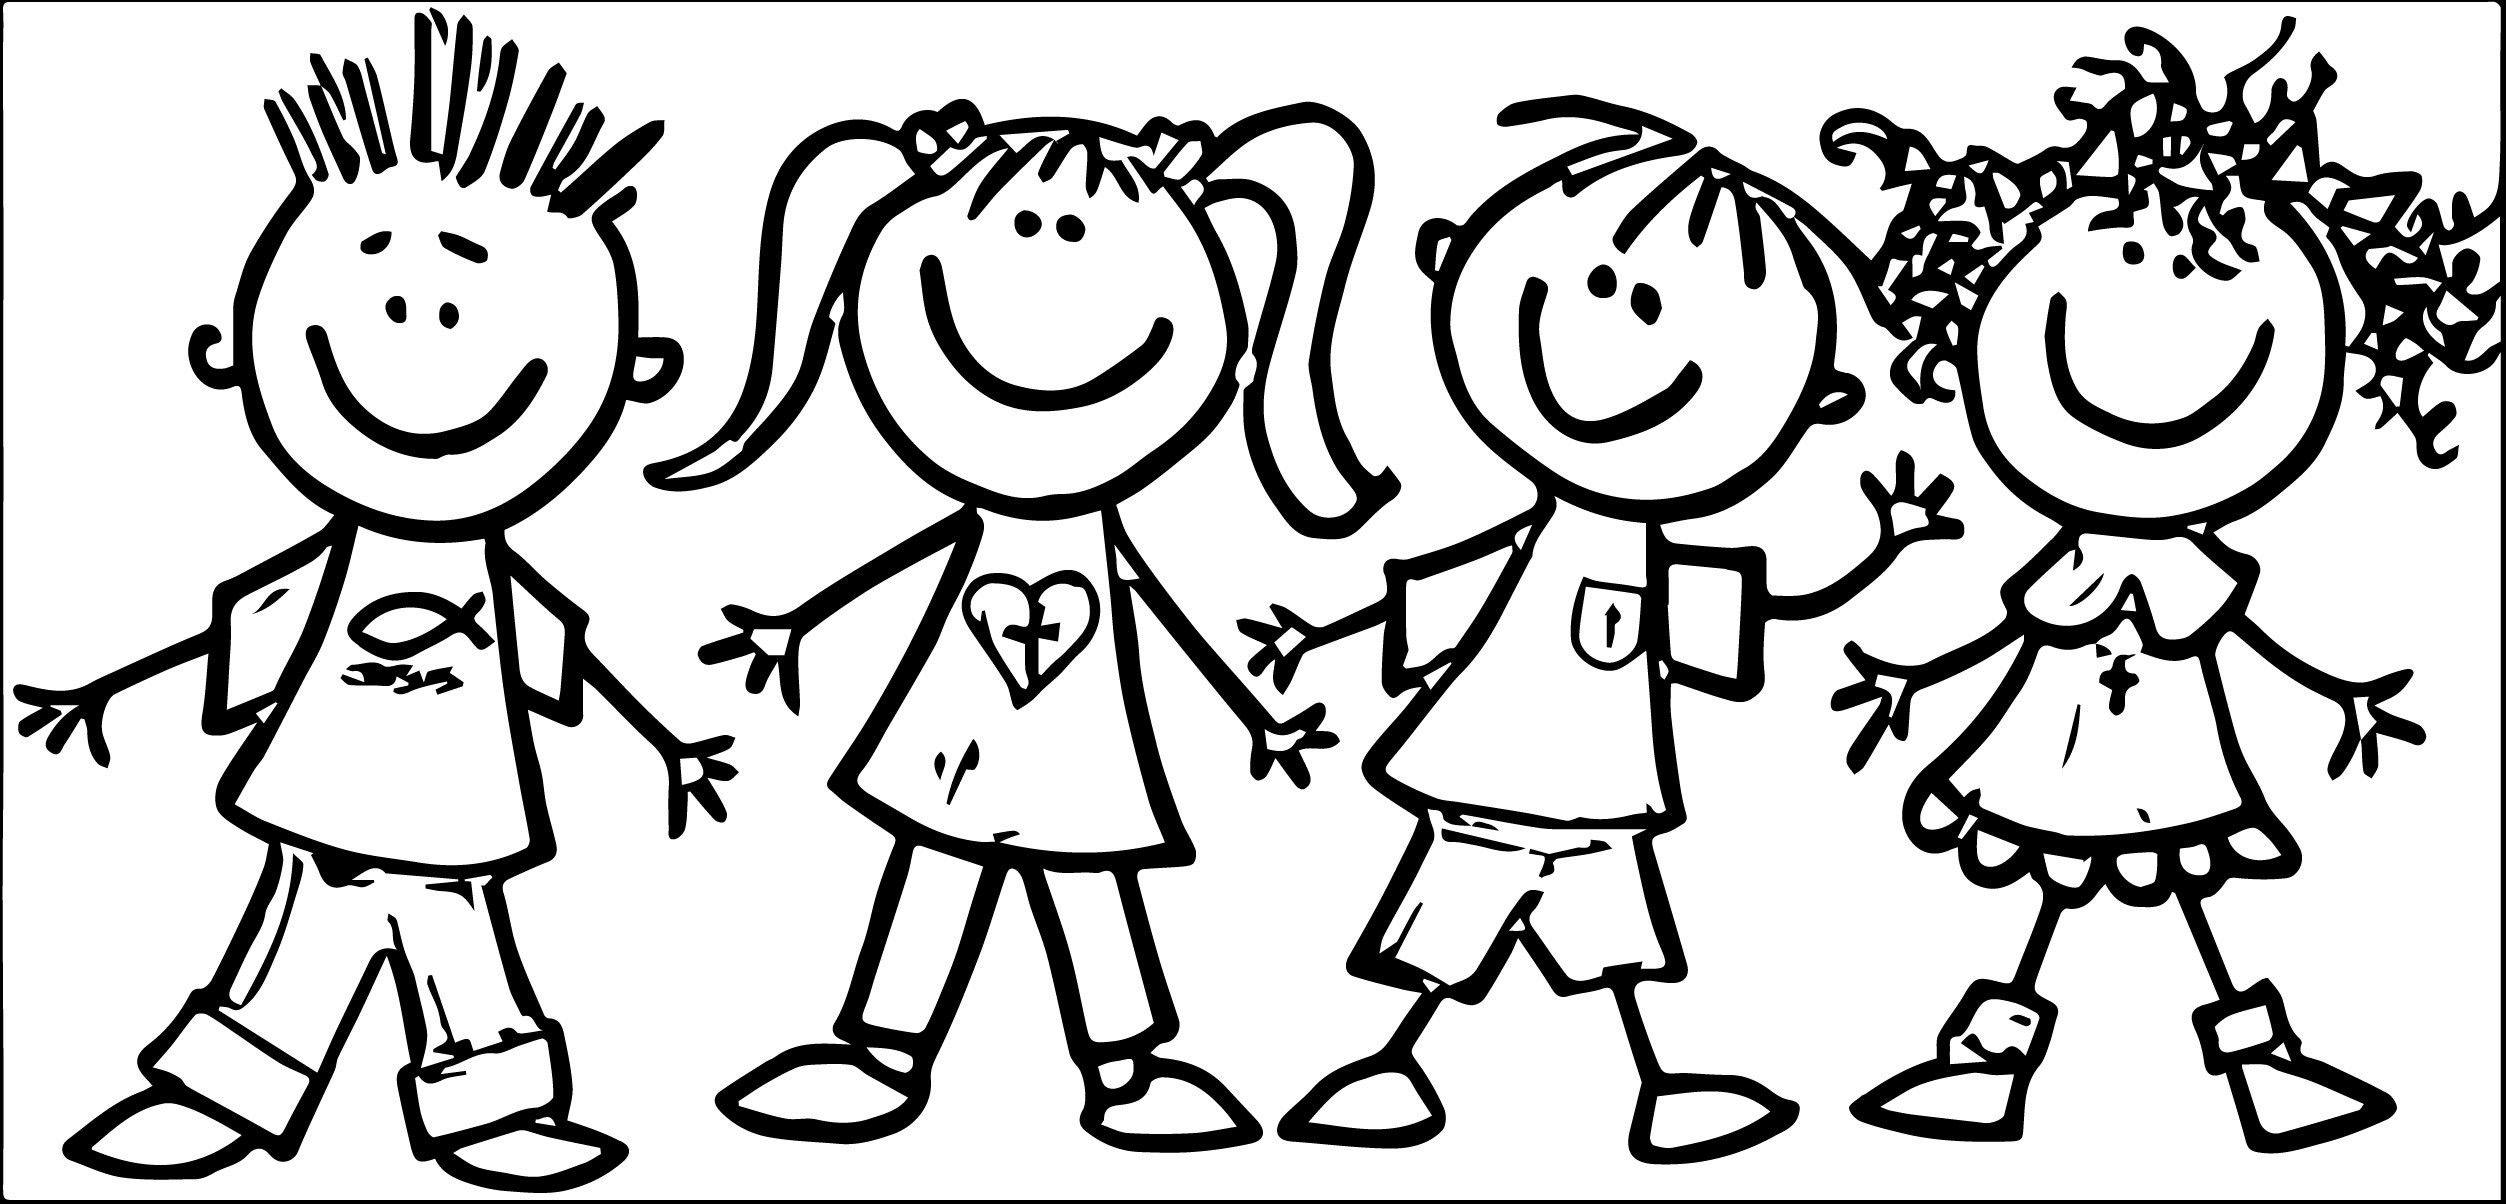 Kindergarten Math Clipart Black And White ClipartUse ...